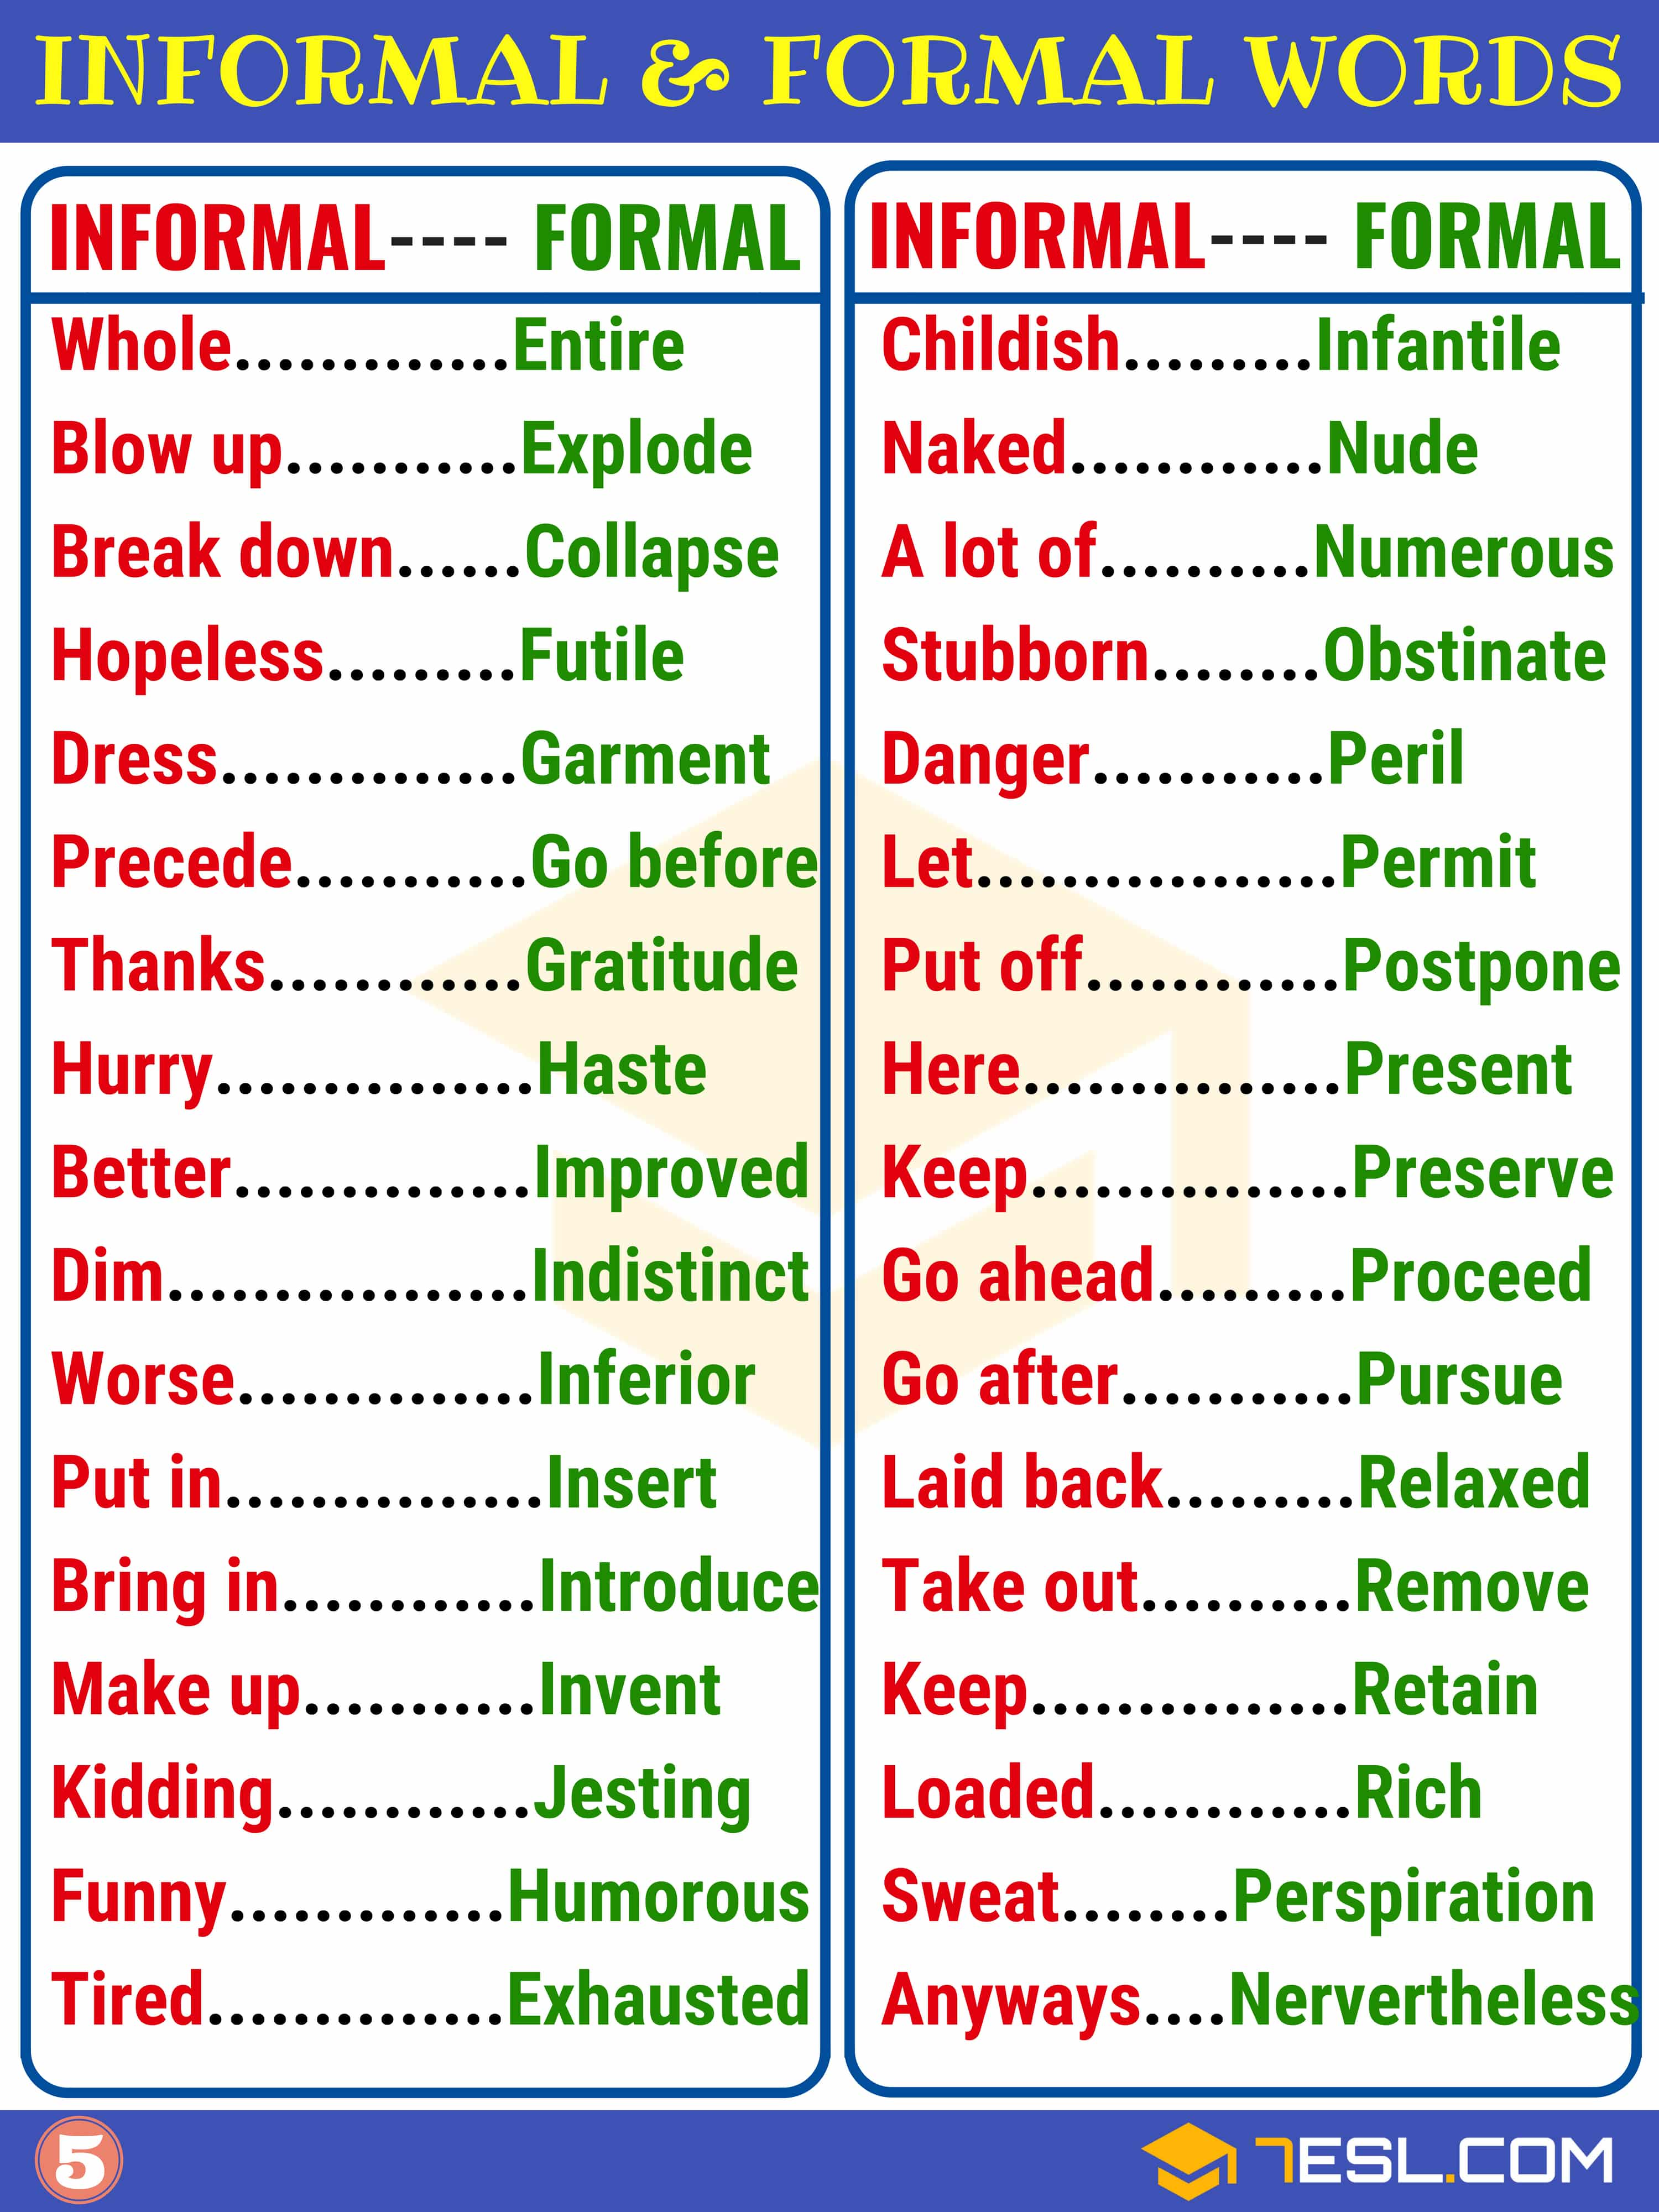 Useful Formal and Informal Words in English